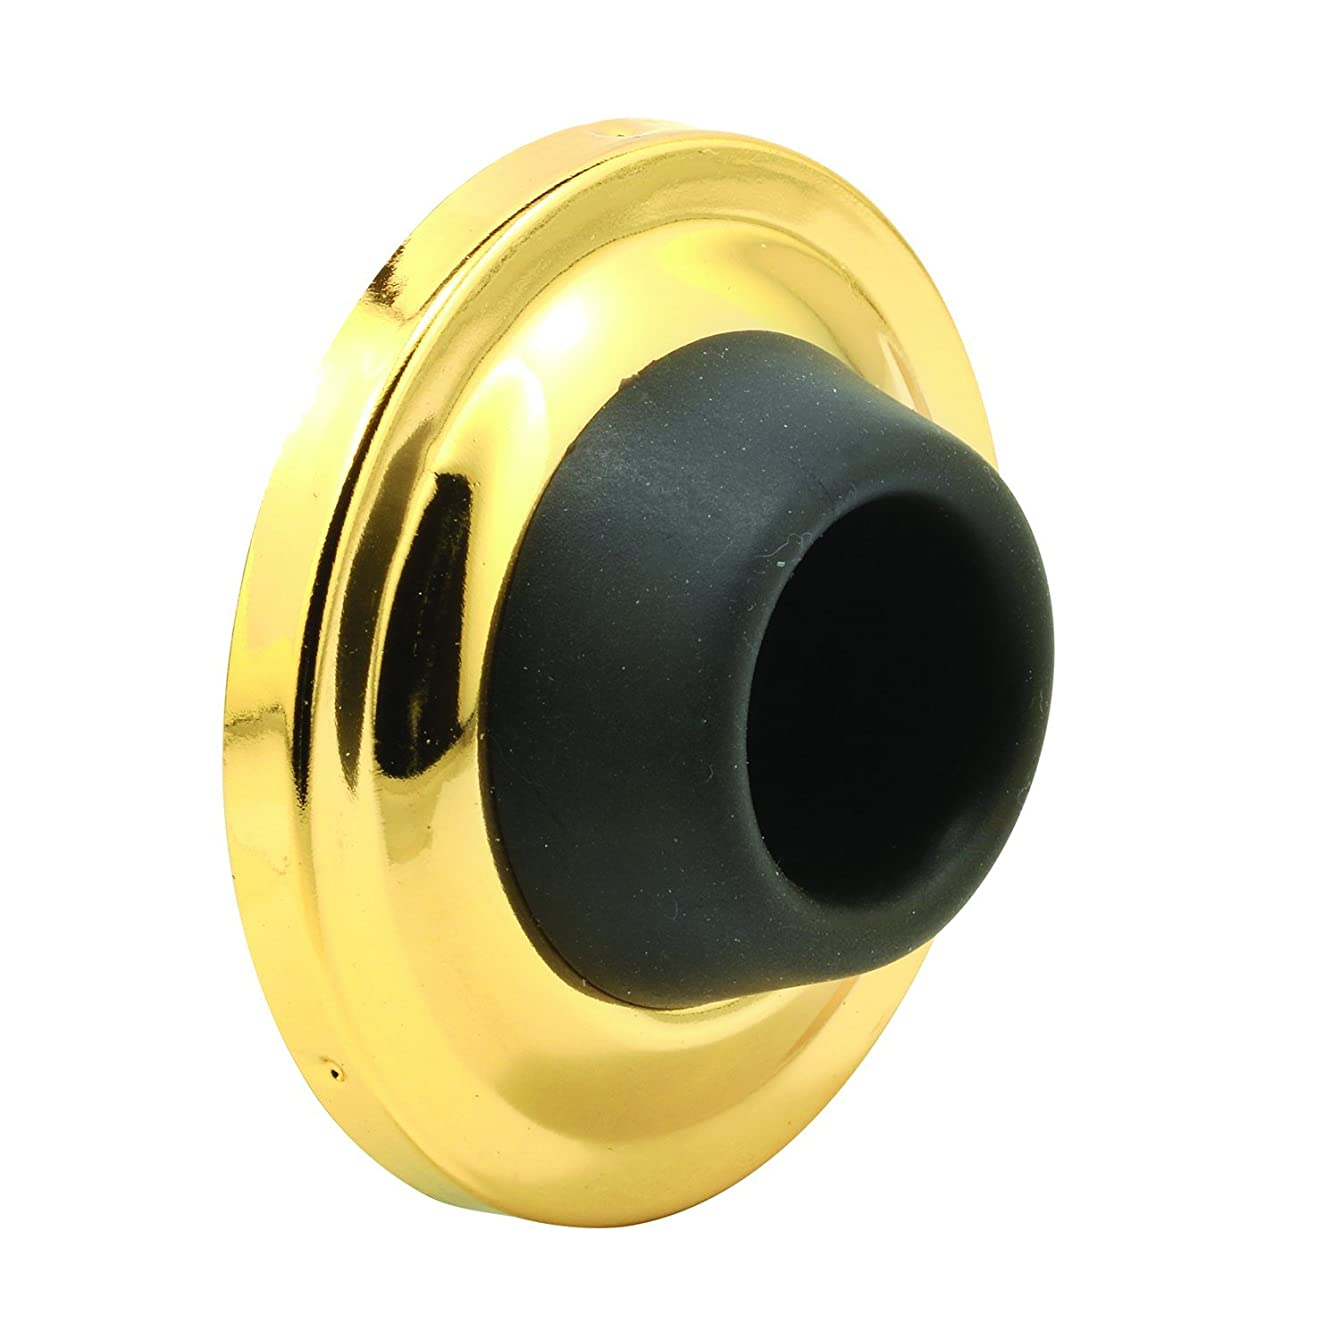 """Prime-Line J 4542 Wall Stop – Protects Walls from Door Knob Damage – 2-1/2"""" Outside Diameter Polished Brass Cover with 1-1/8"""" Black Round Rubber Bumper – Easy to Install"""